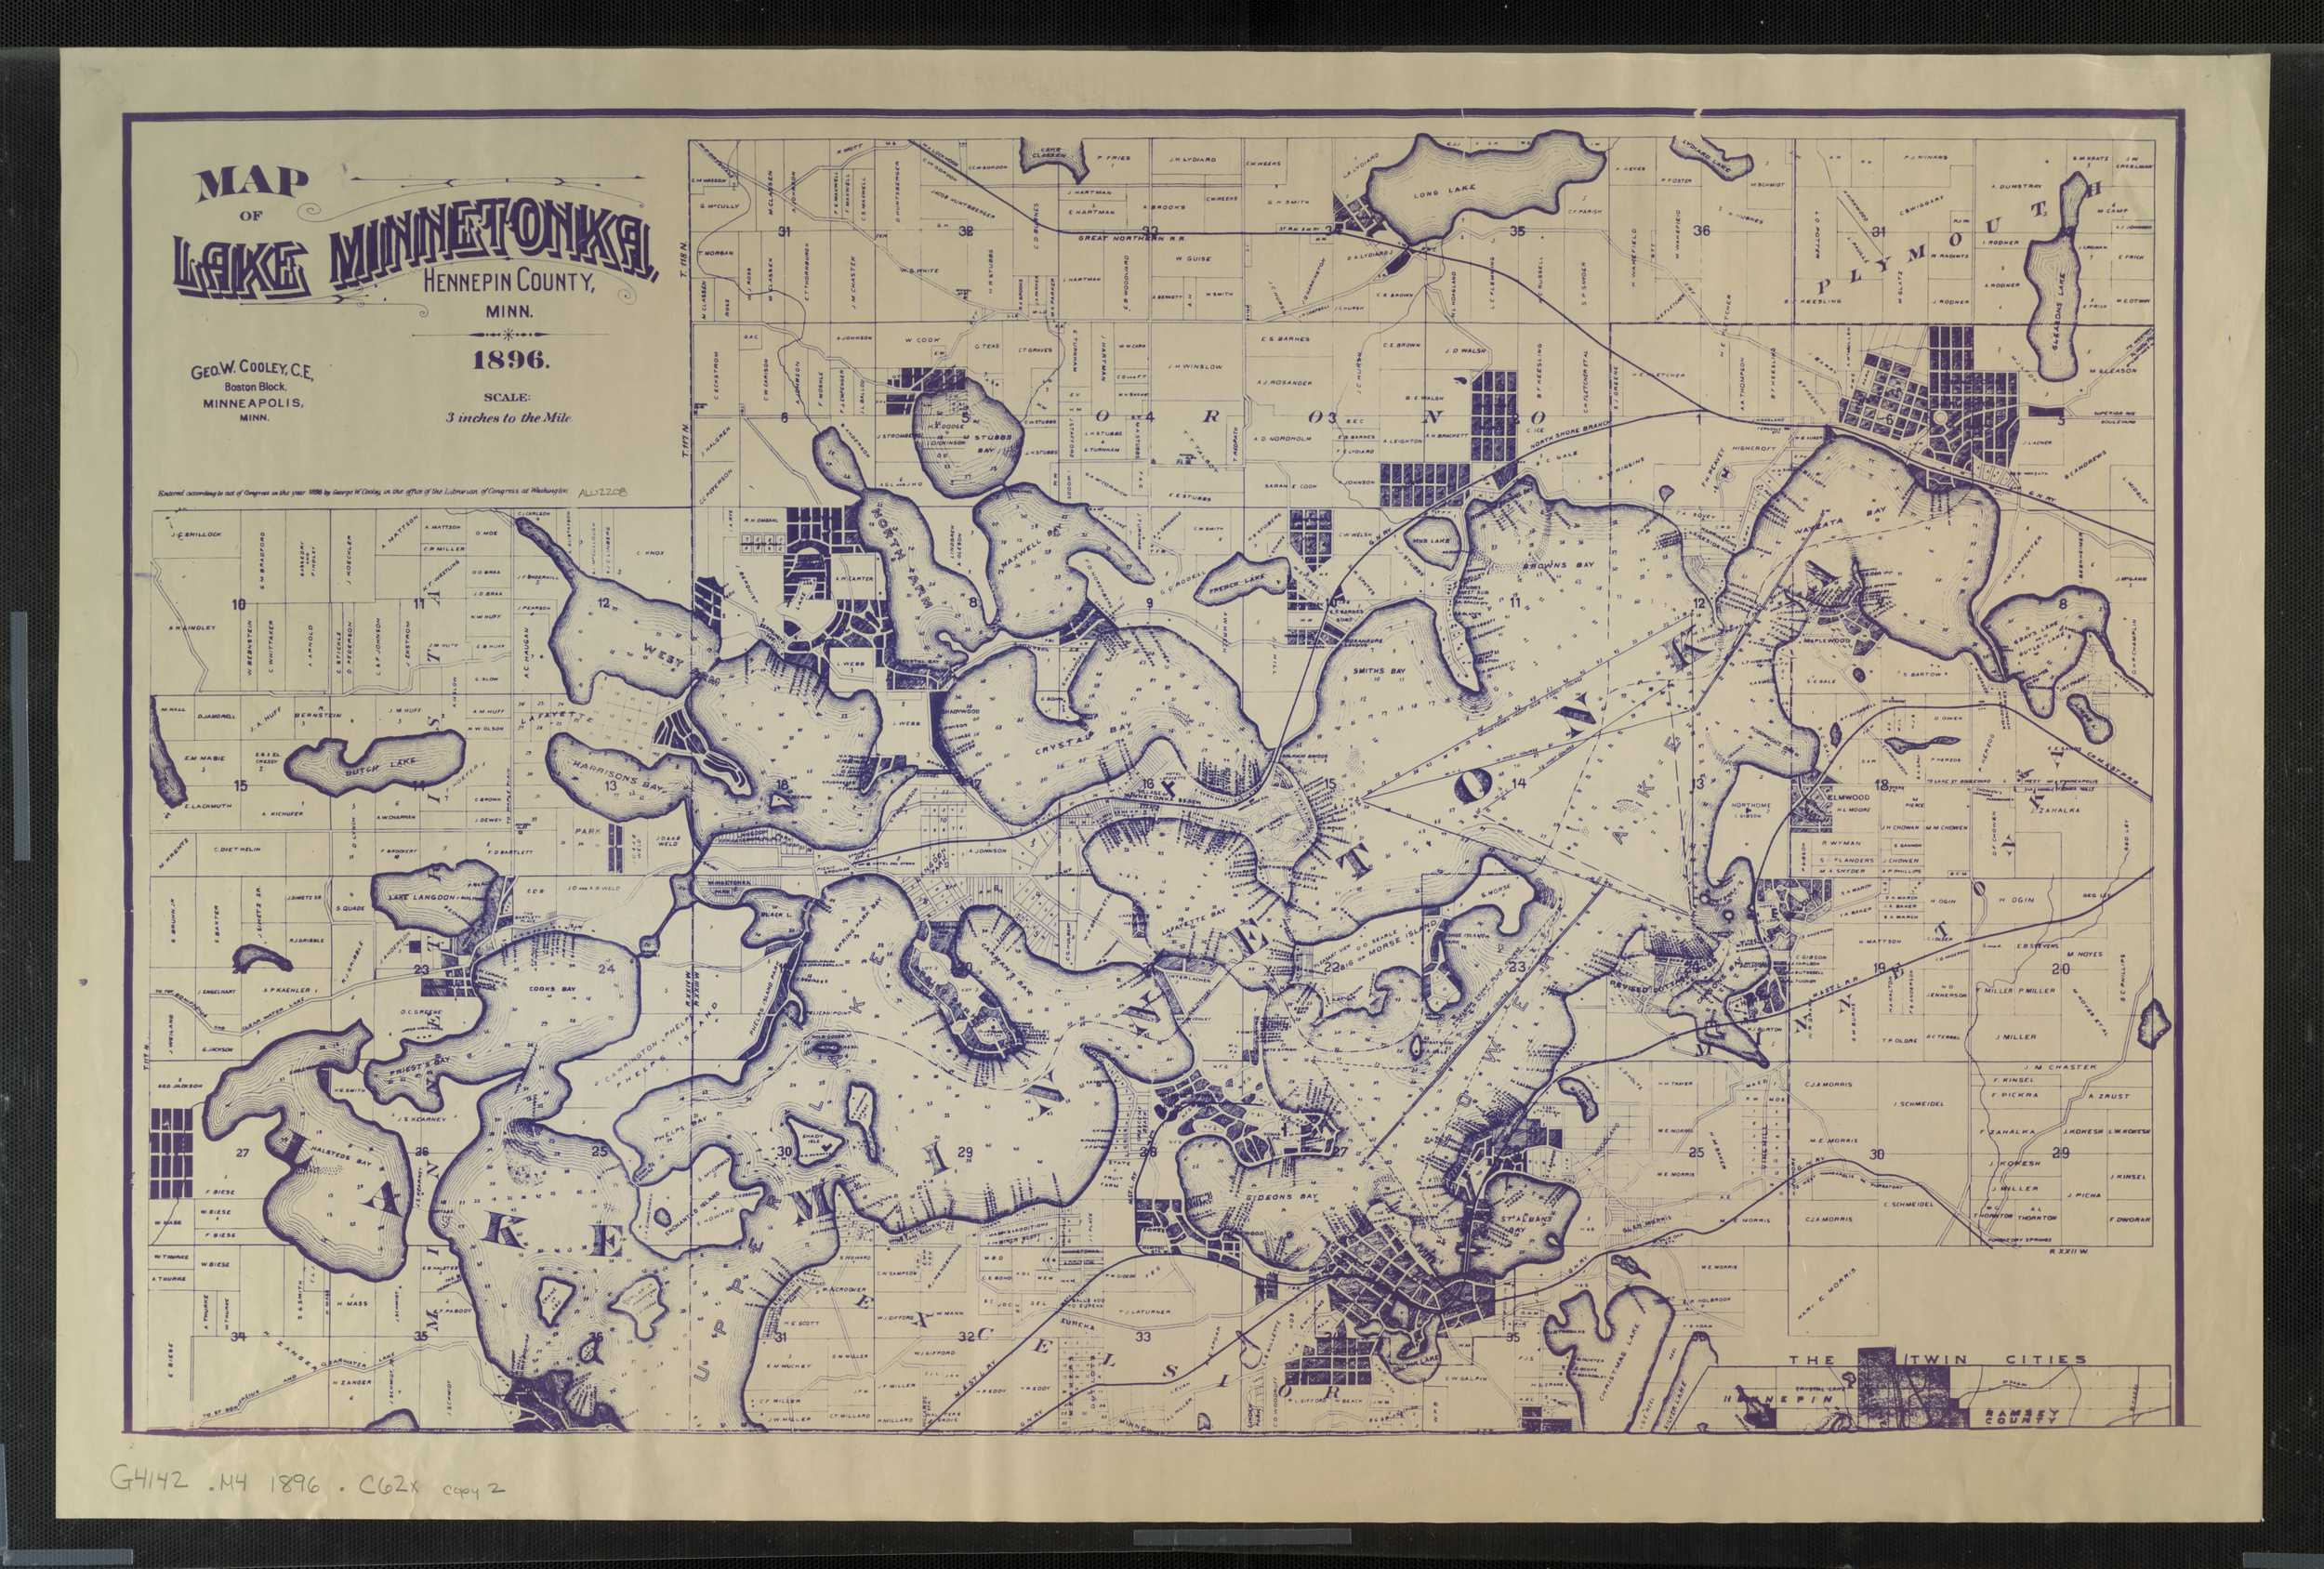 John R Indexed Map Of Lake Minnetonka on